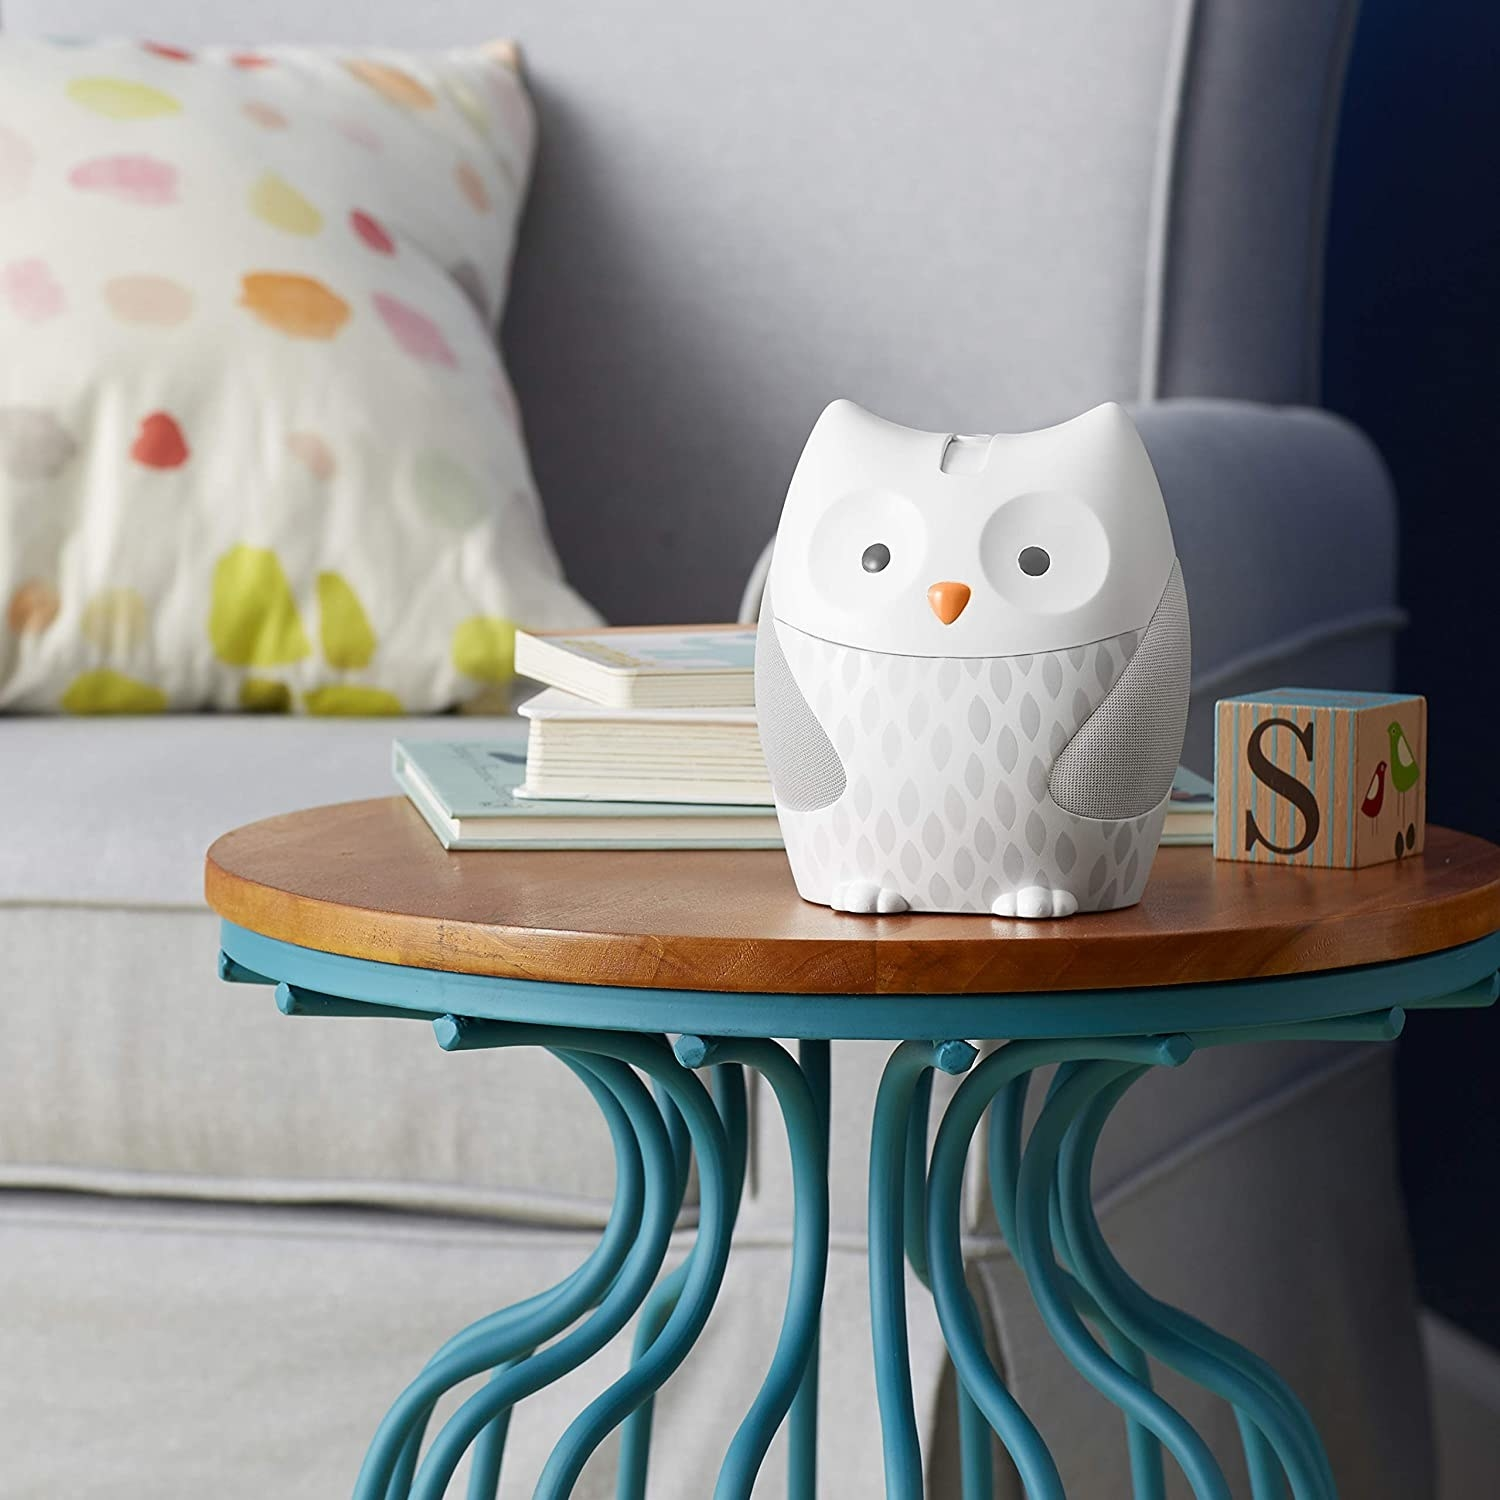 Noise machine shaped like a white owl with gray accents and an orange beak